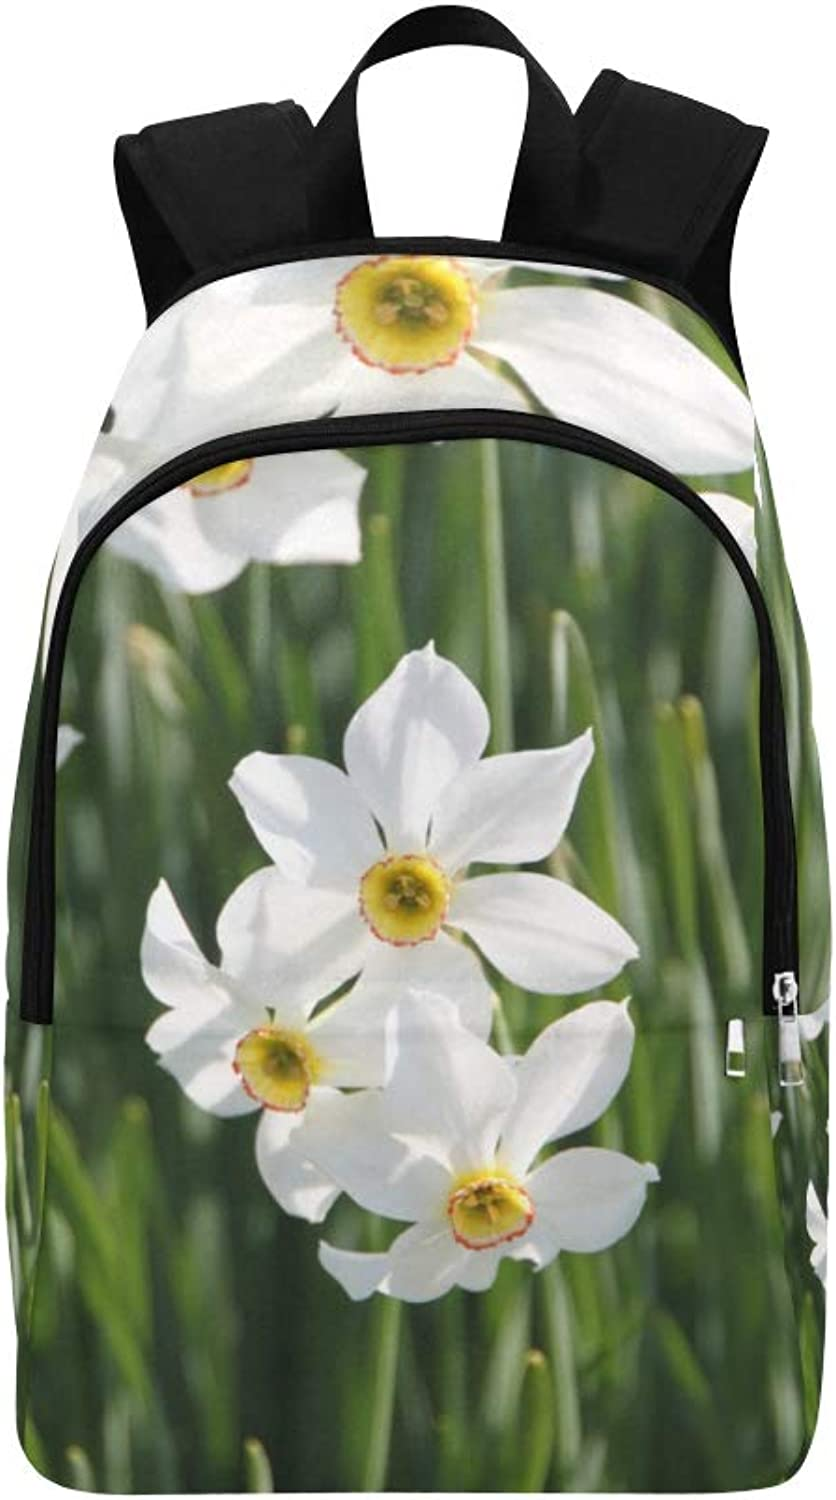 Beautiful White Daffodil Flower Casual Daypack Travel Bag College School Backpack for Mens and Women